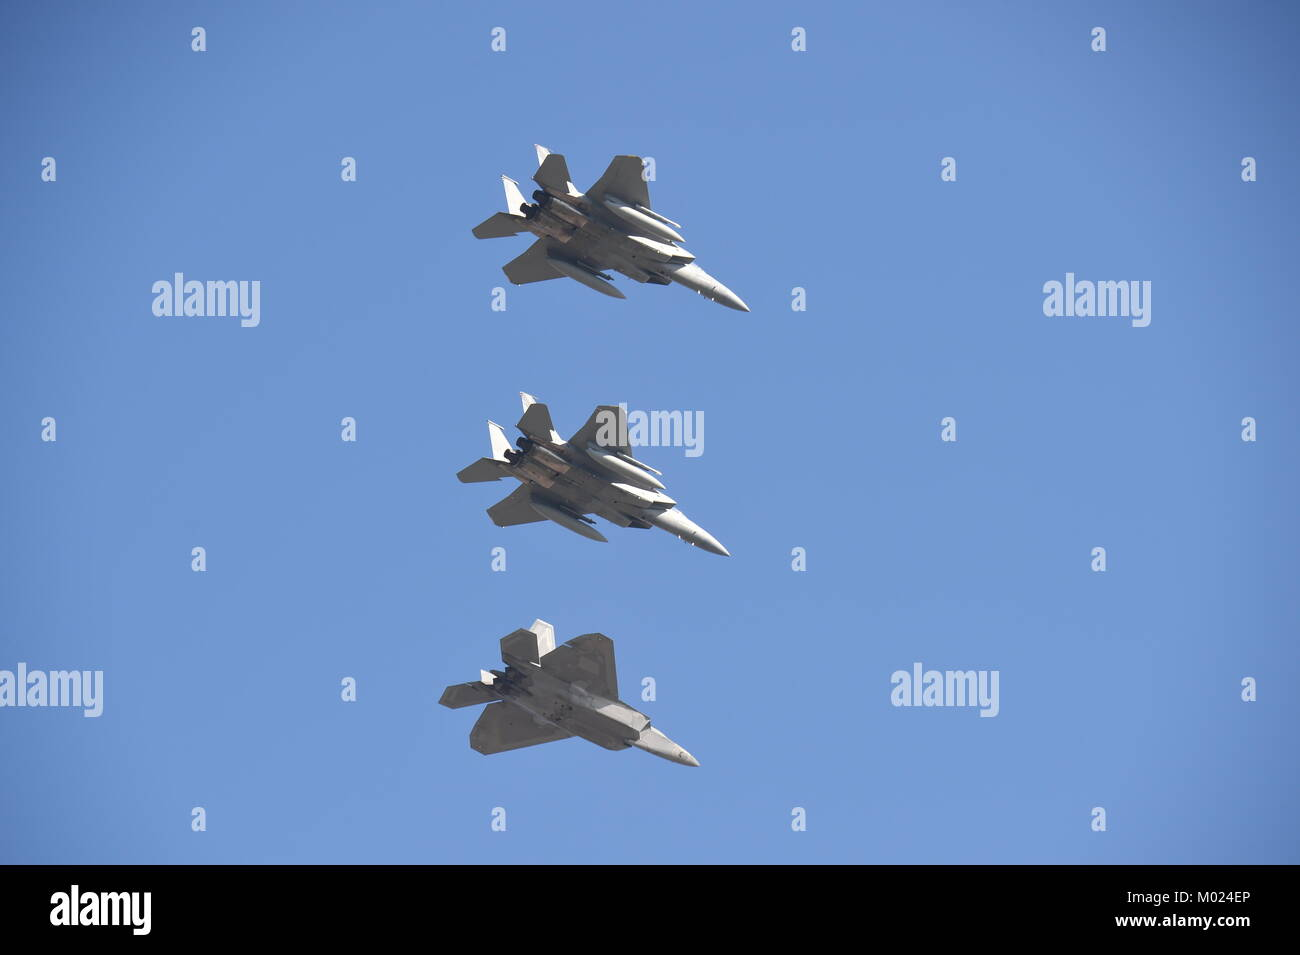 Two U.S. Air Force F-15C Eagle fighter jets from California Air National Guard's 144th Fighter Wing return to base - Stock Image